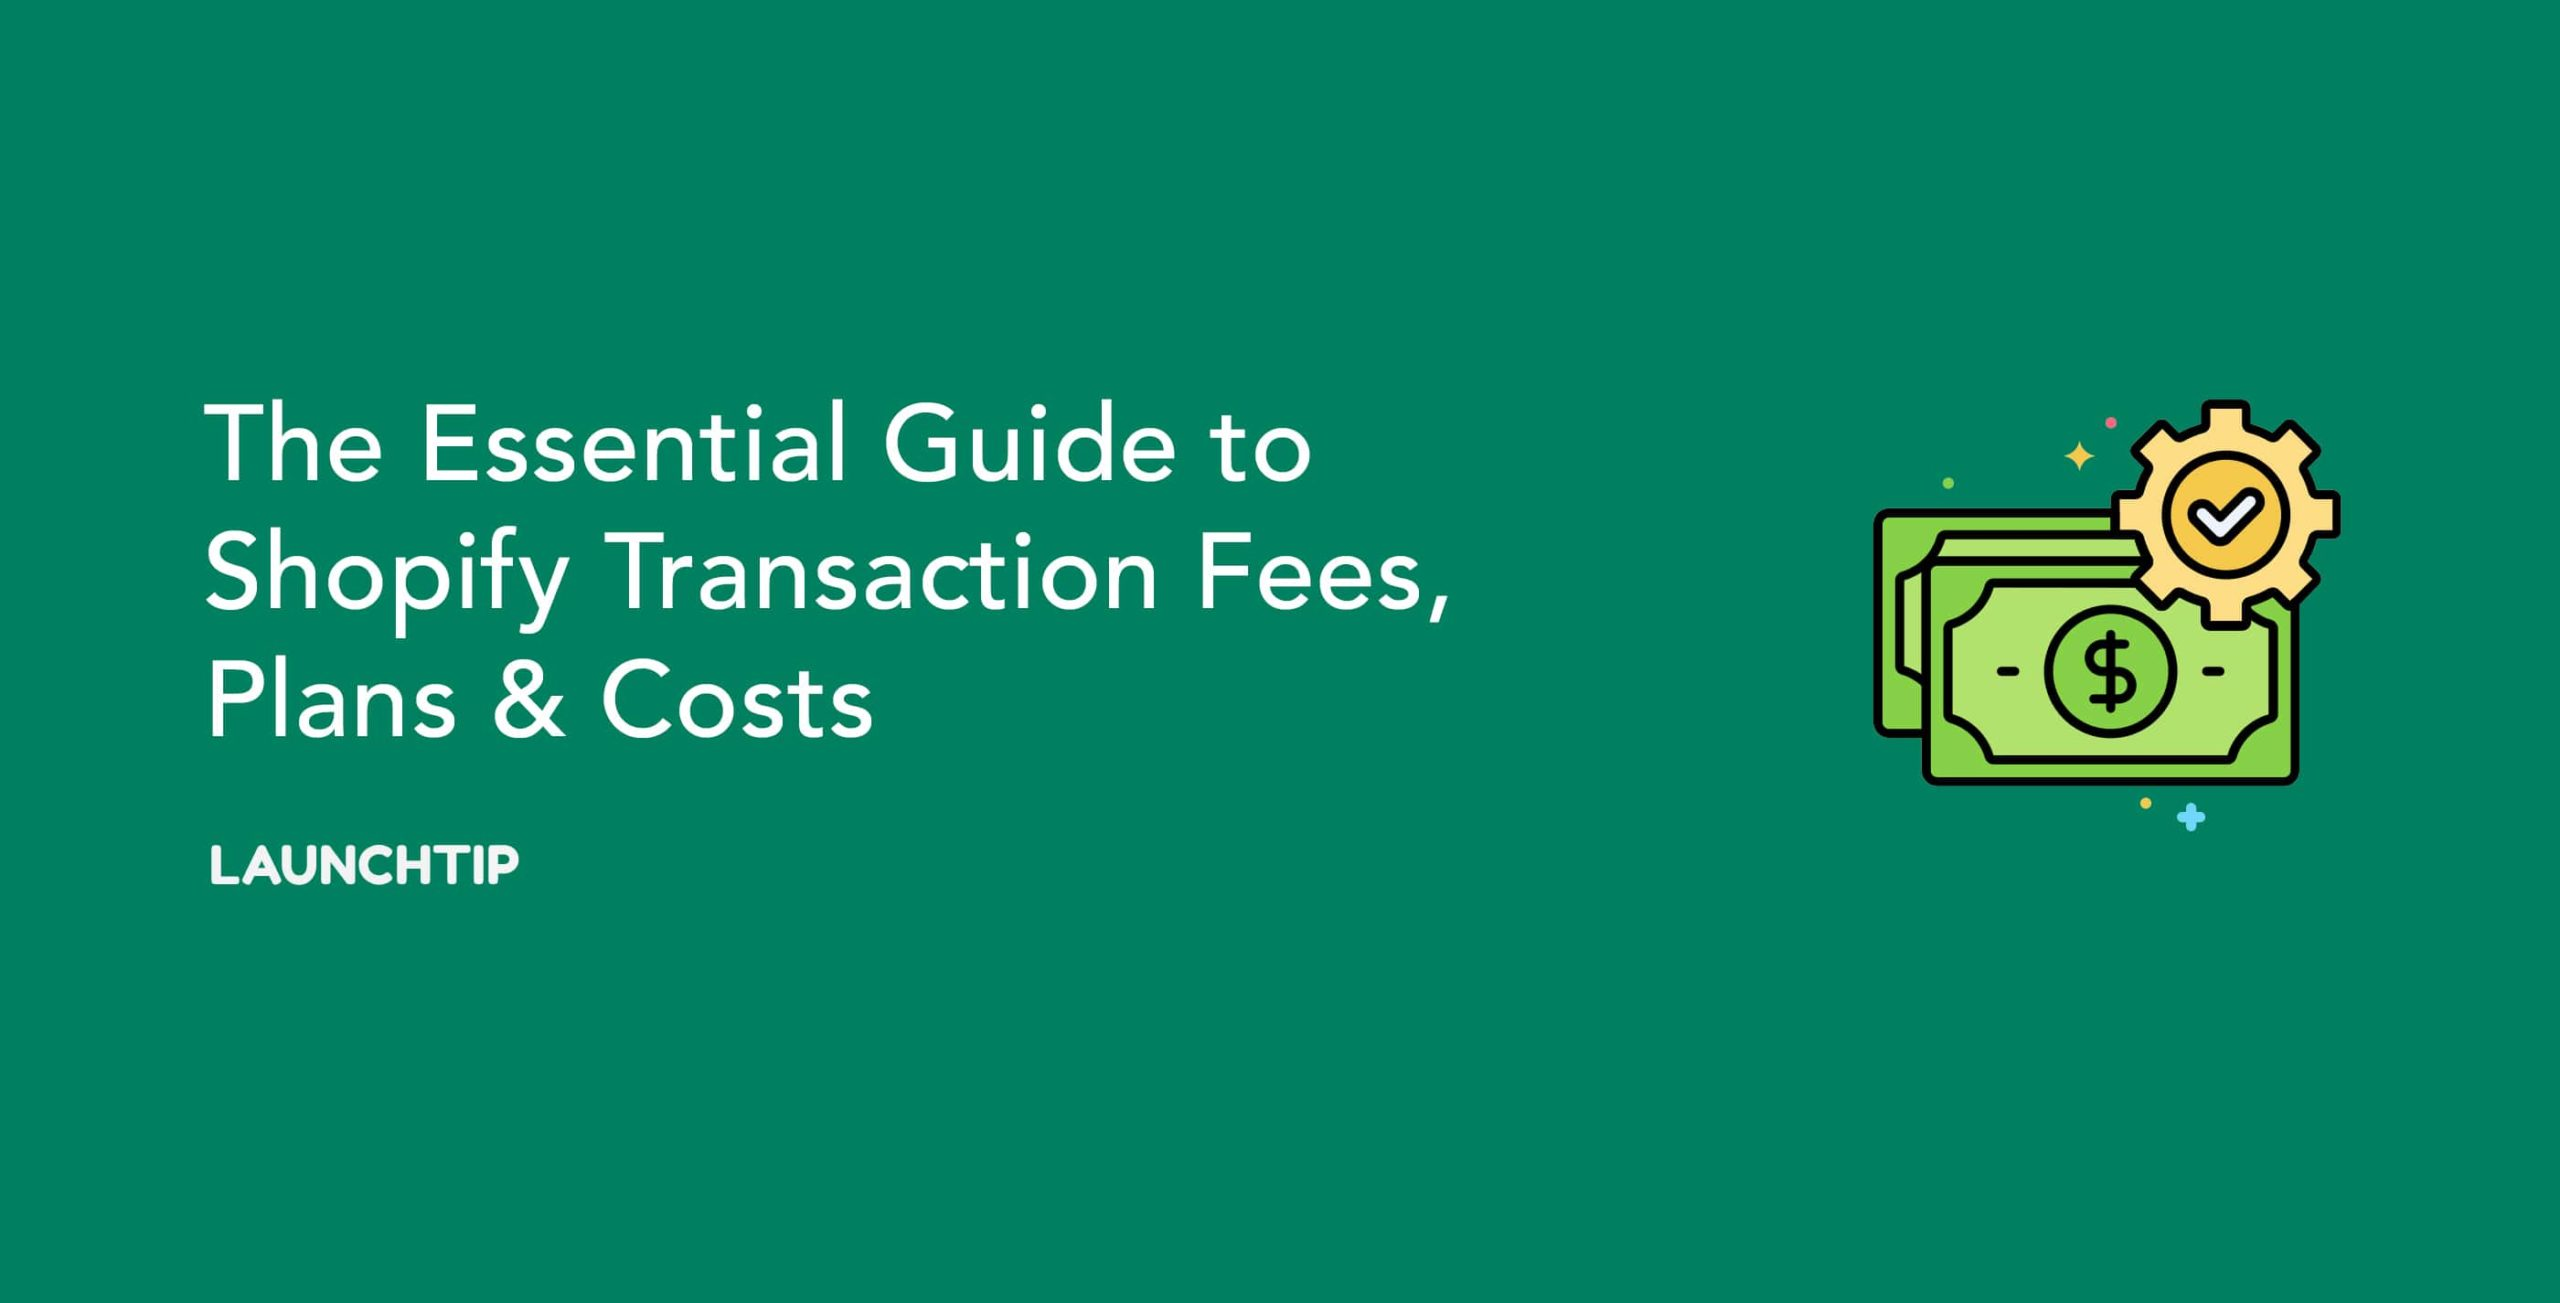 The Essential Guide to Shopify Transaction Fees, Plans & Costs